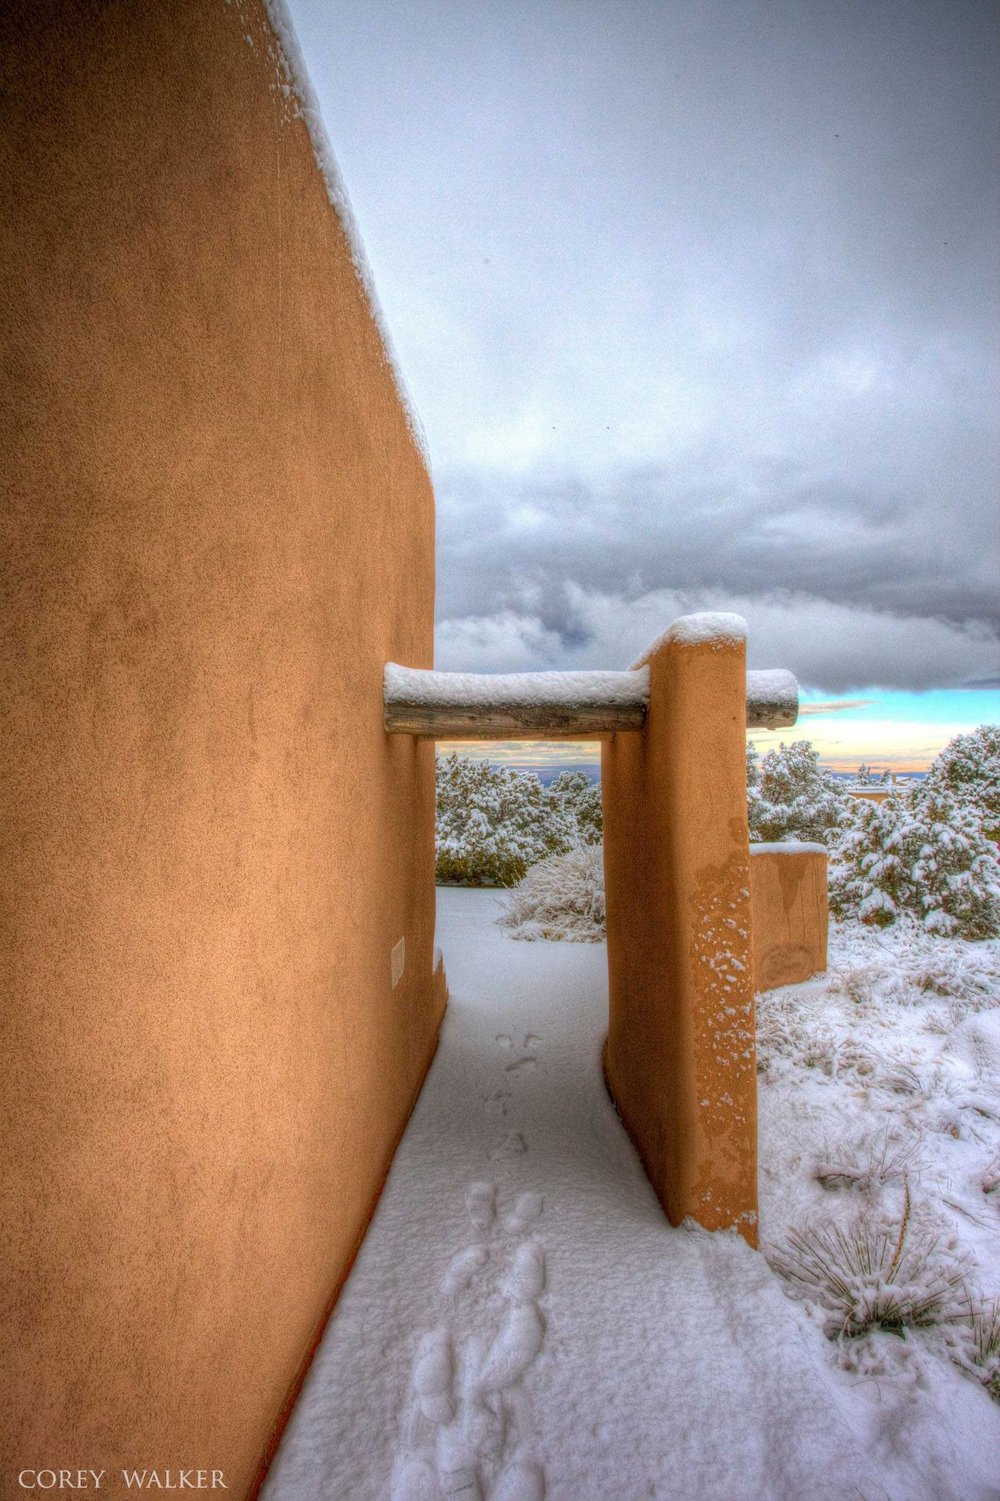 Taken in the Albuquerque foothills Photo by Corey Walker